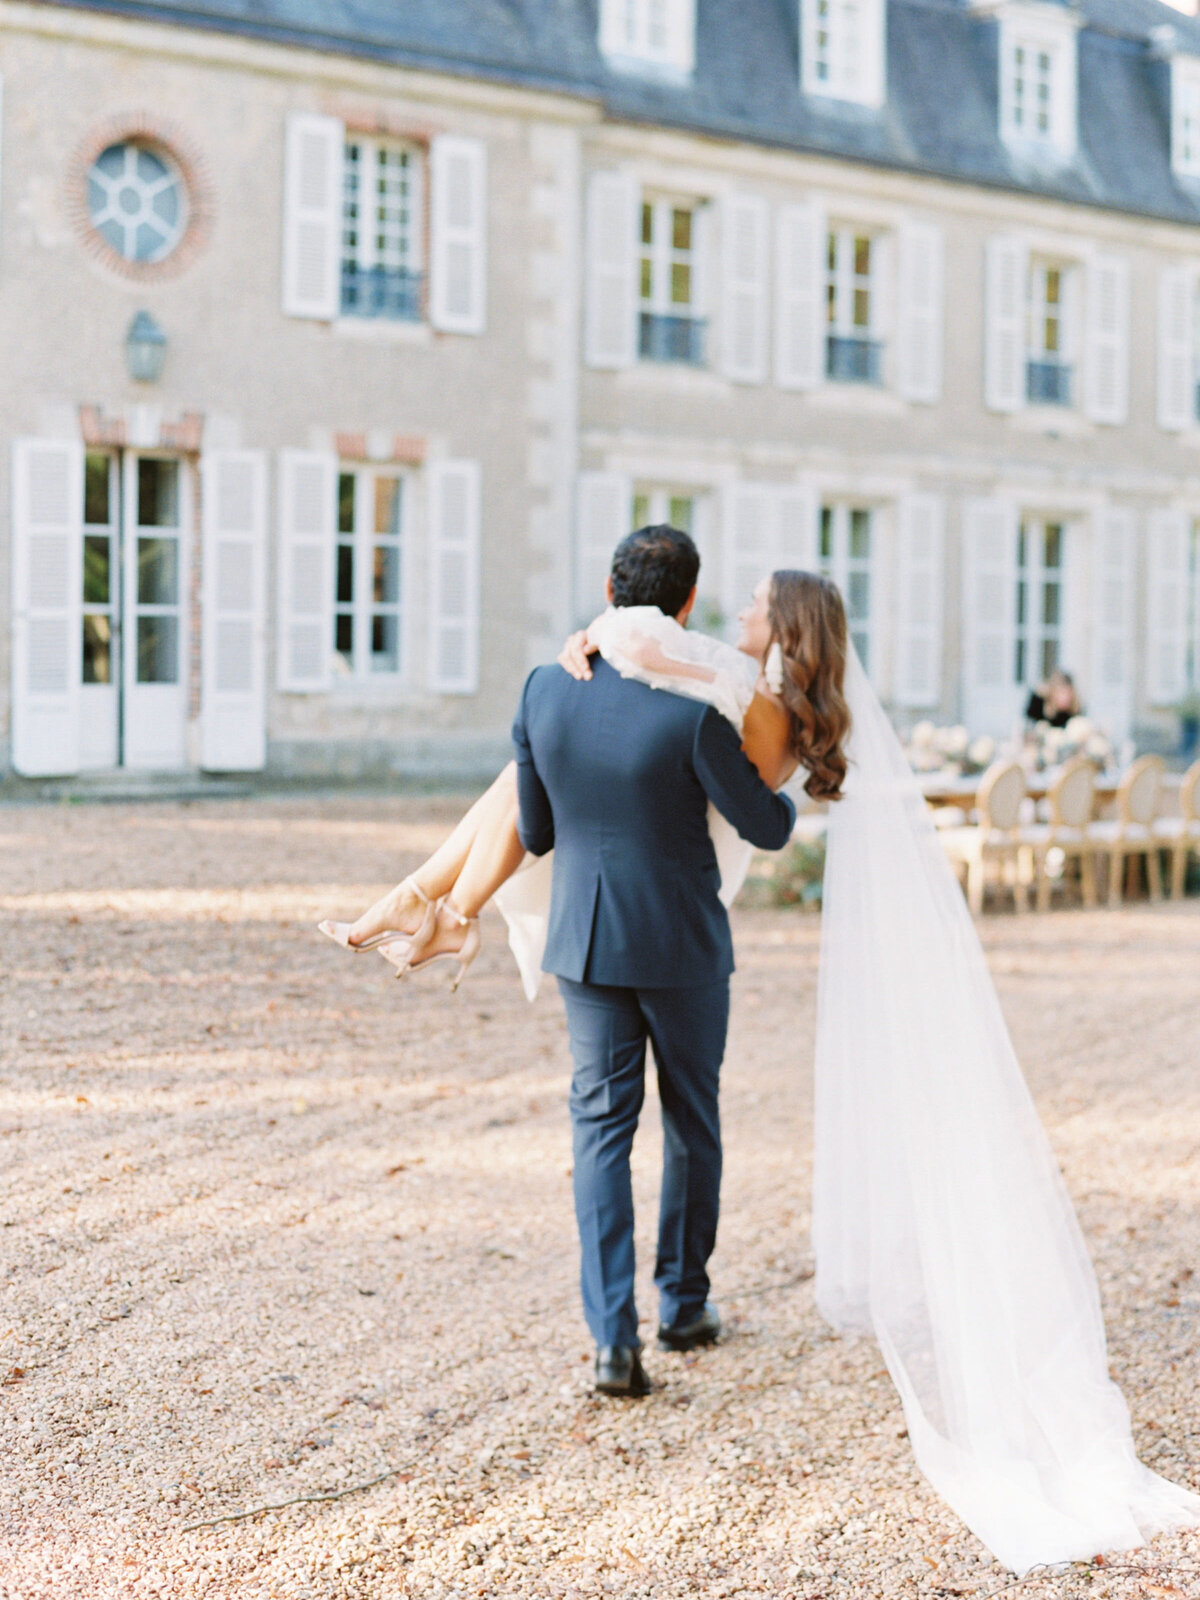 chateau-bouthonvilliers-wedding-paris-wedding-photographer-mackenzie-reiter-photography-61